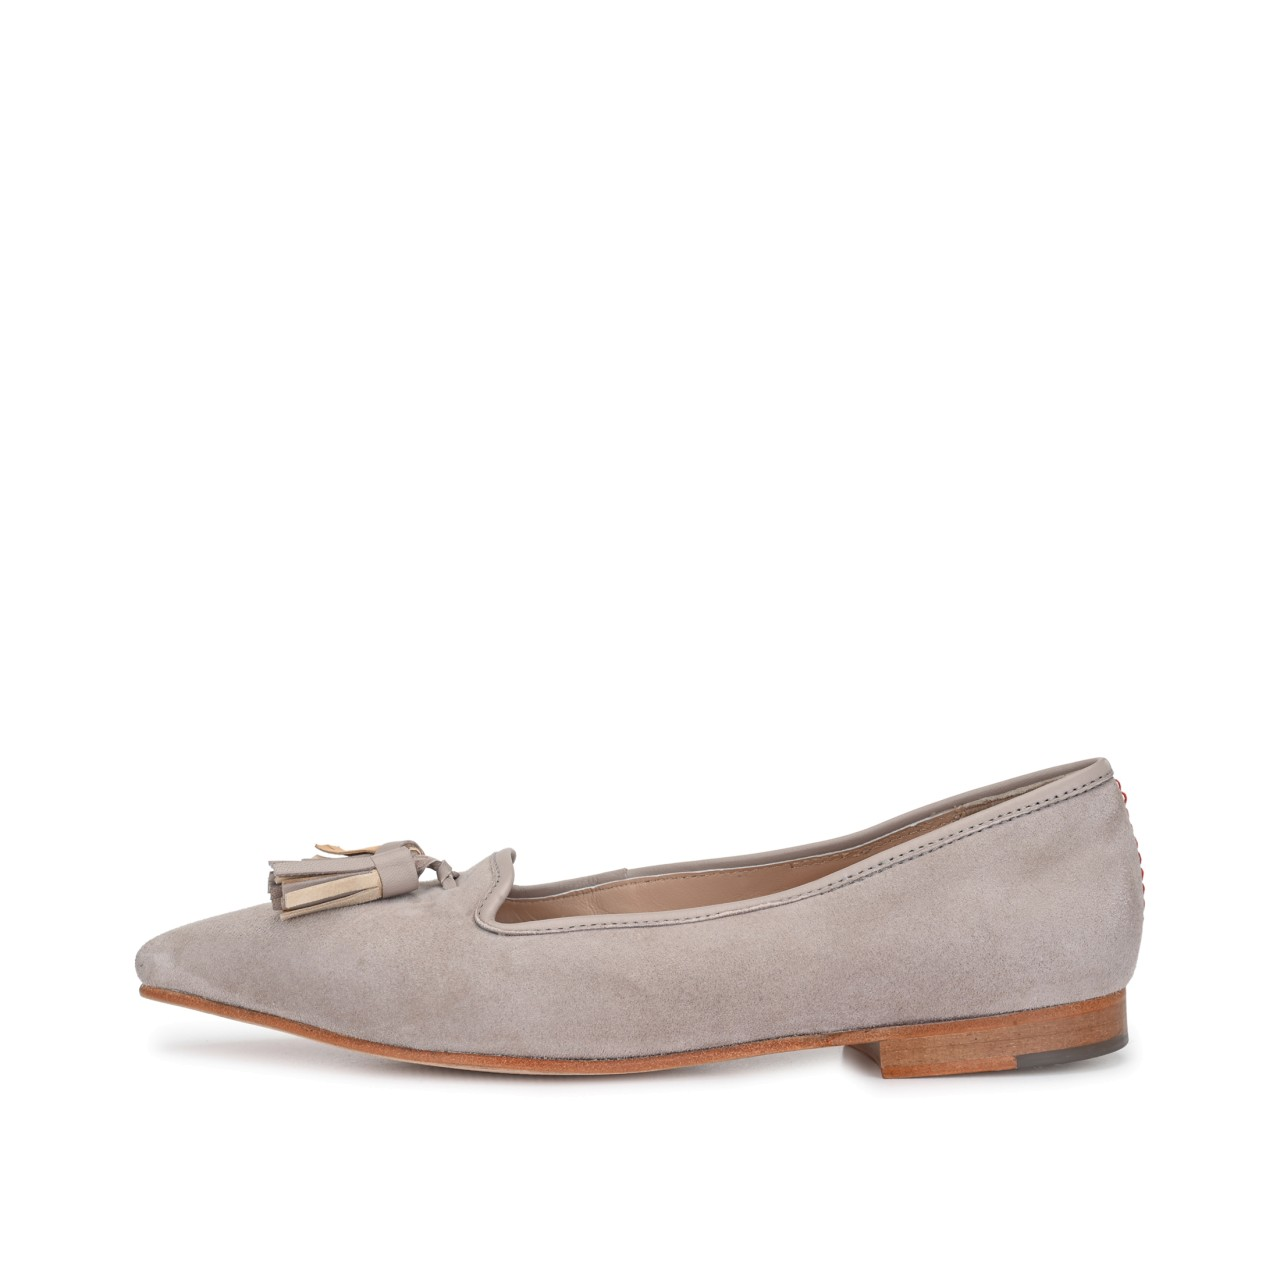 MARLA Suede Taupe